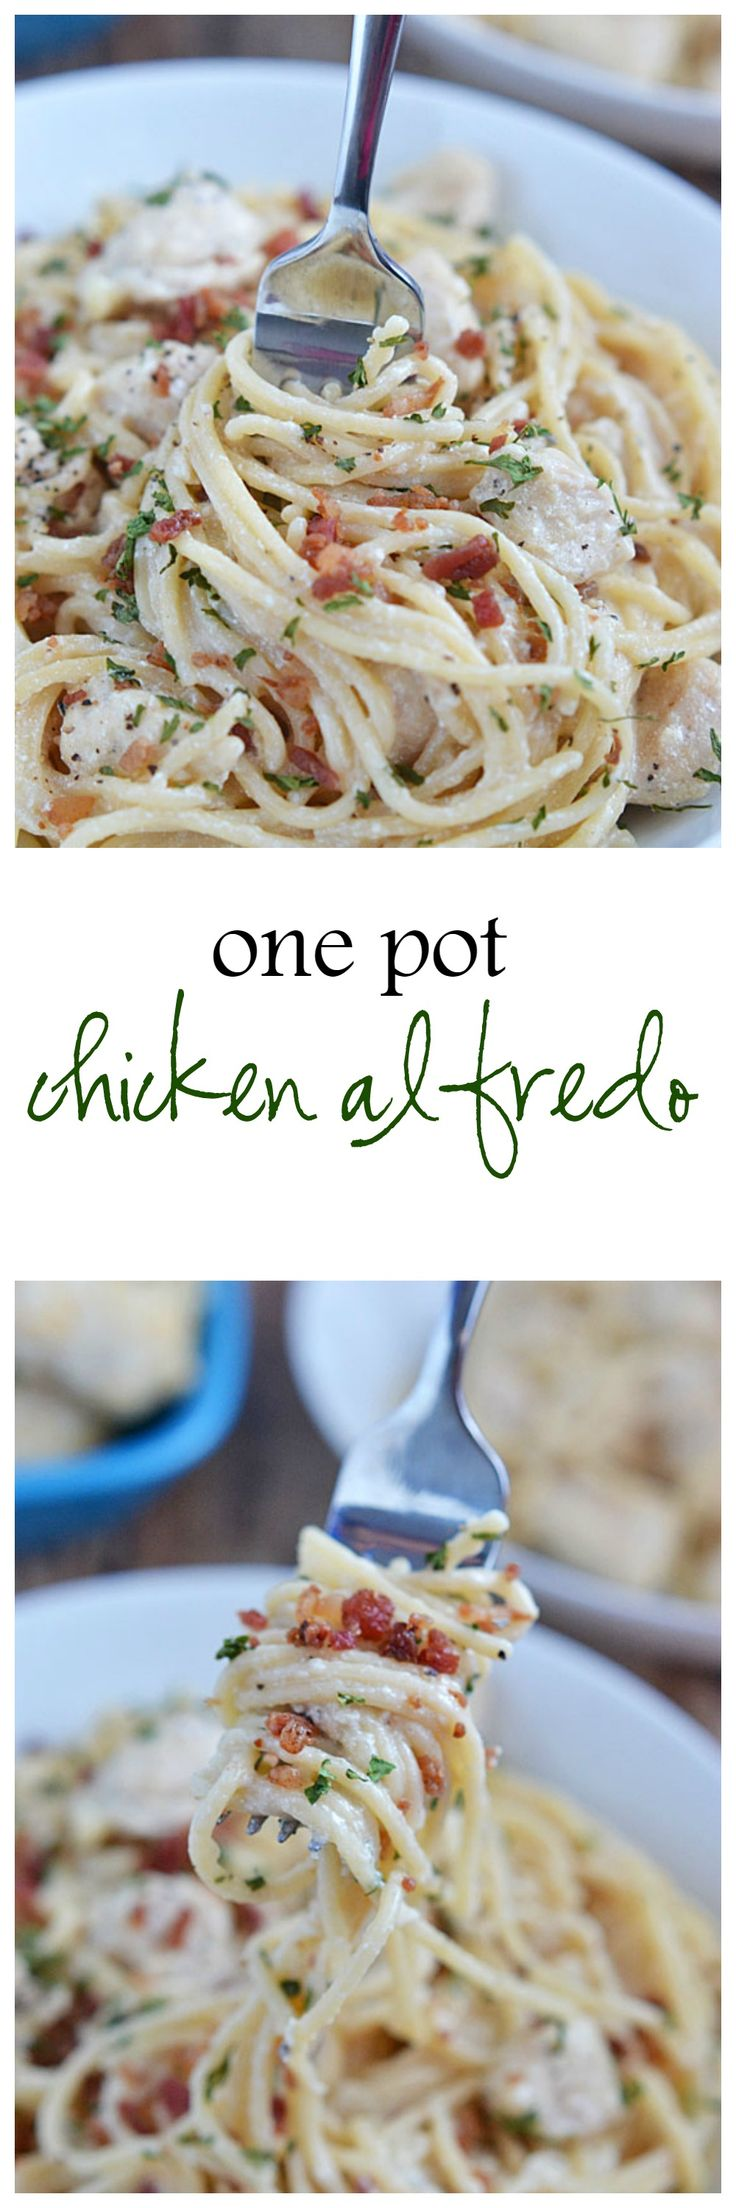 One Pot Chicken Alfredo - Ready in about 30 minutes - and tastes just as good as a dish that youd order at your favorite Italian restaurant. Even better? Everything - including the pasta - is cooked in just one pot! | @andwhatelse